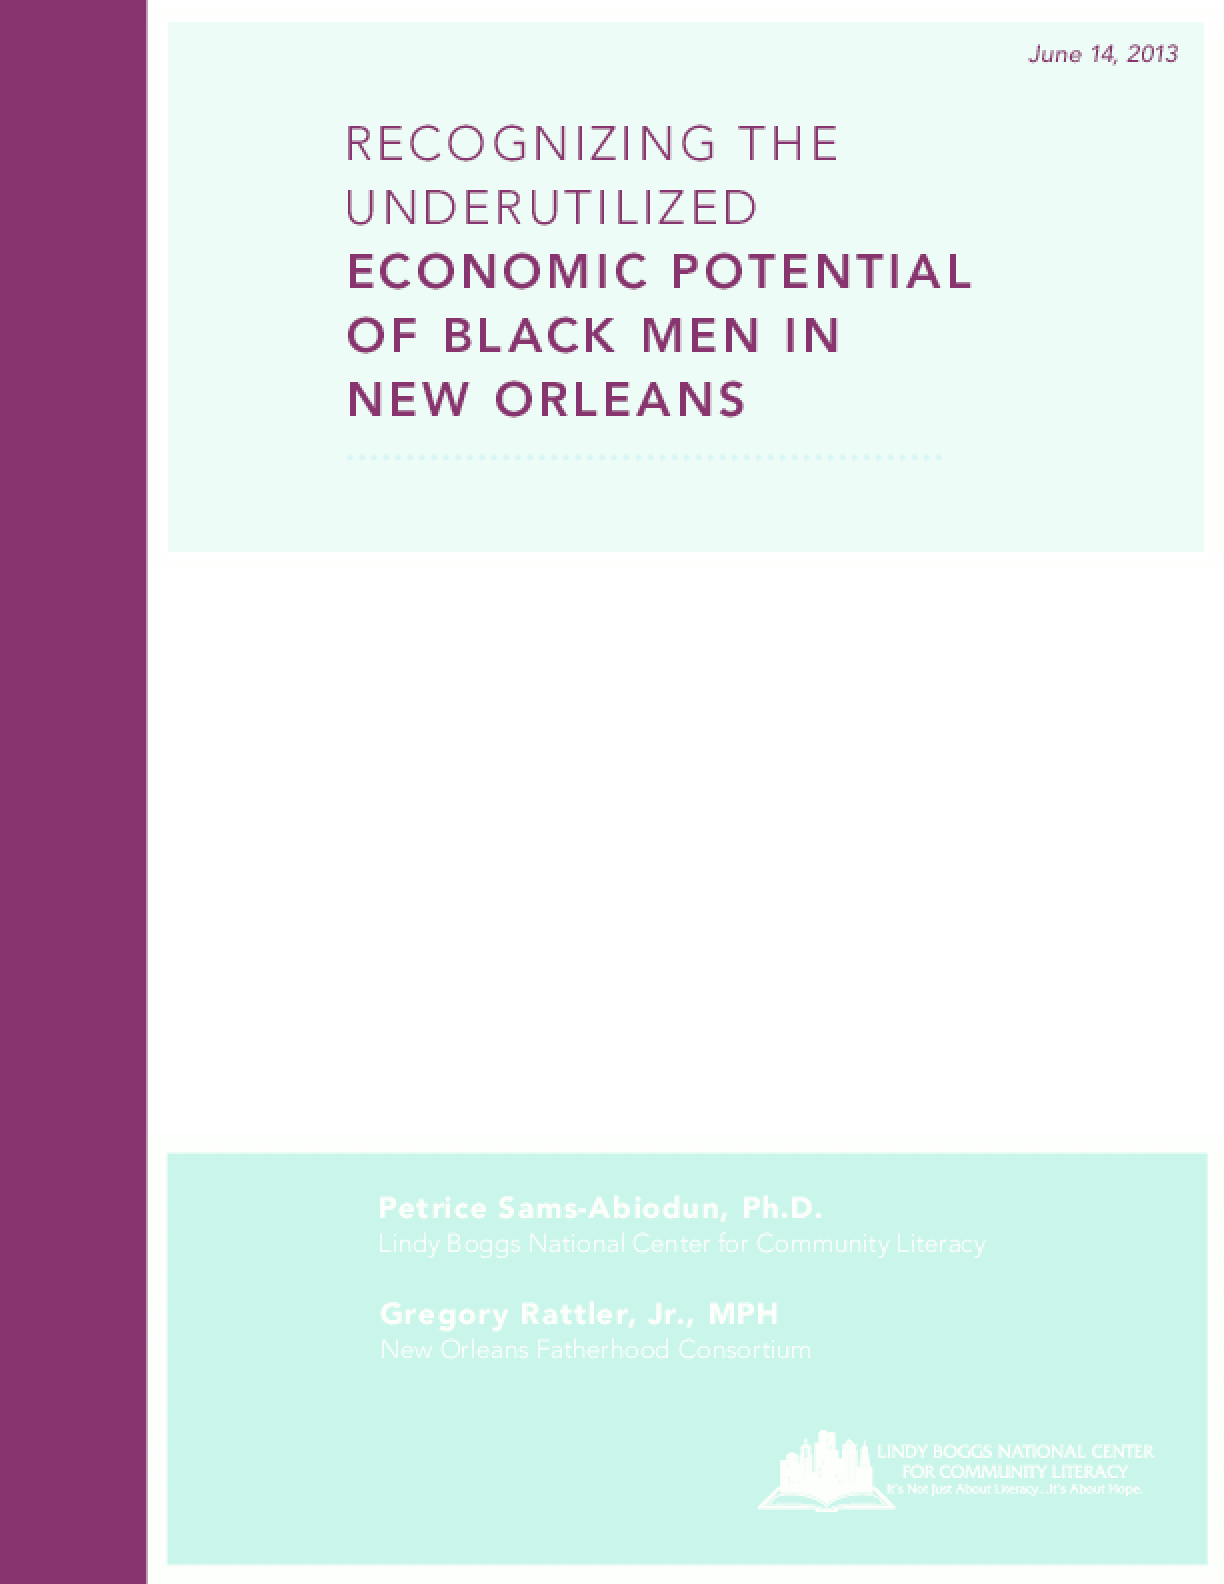 Recognizing the Underutilized Economic Potential of Black Men in New Orleans